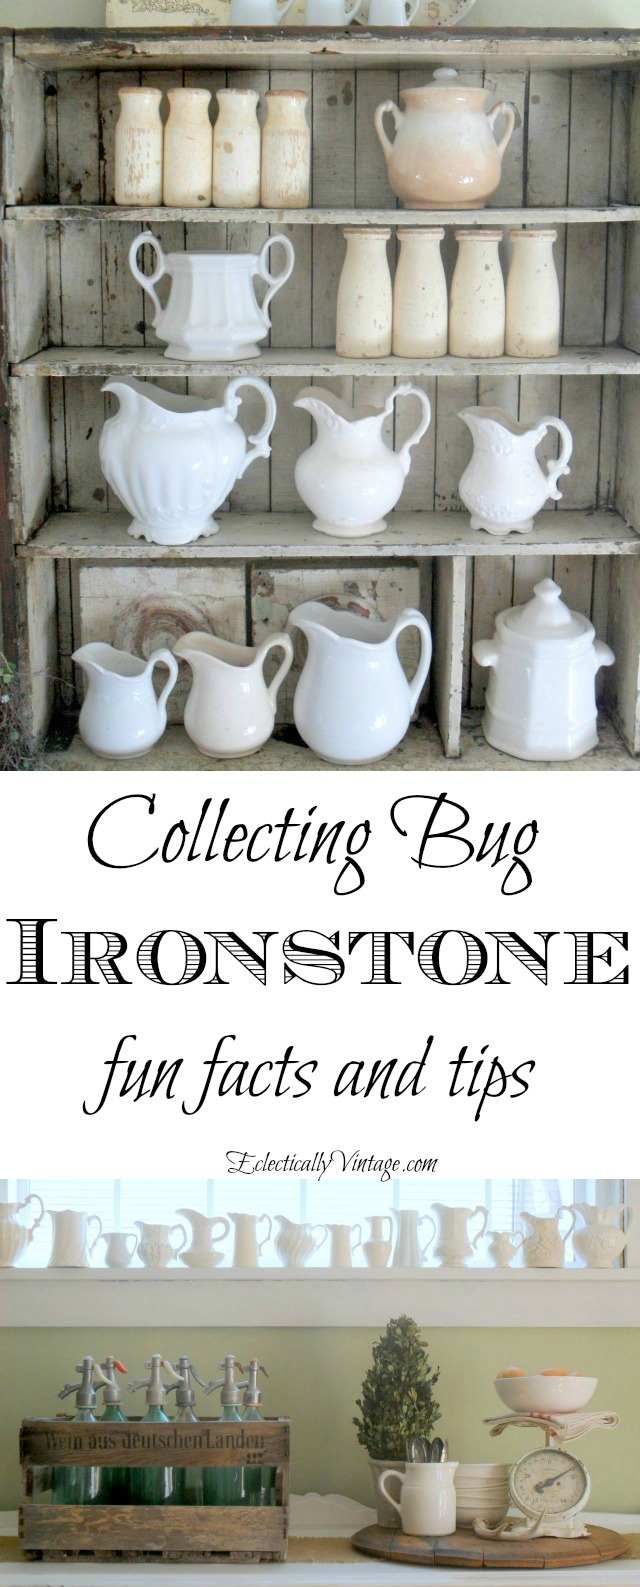 Collecting Ironstone kellyelko.com